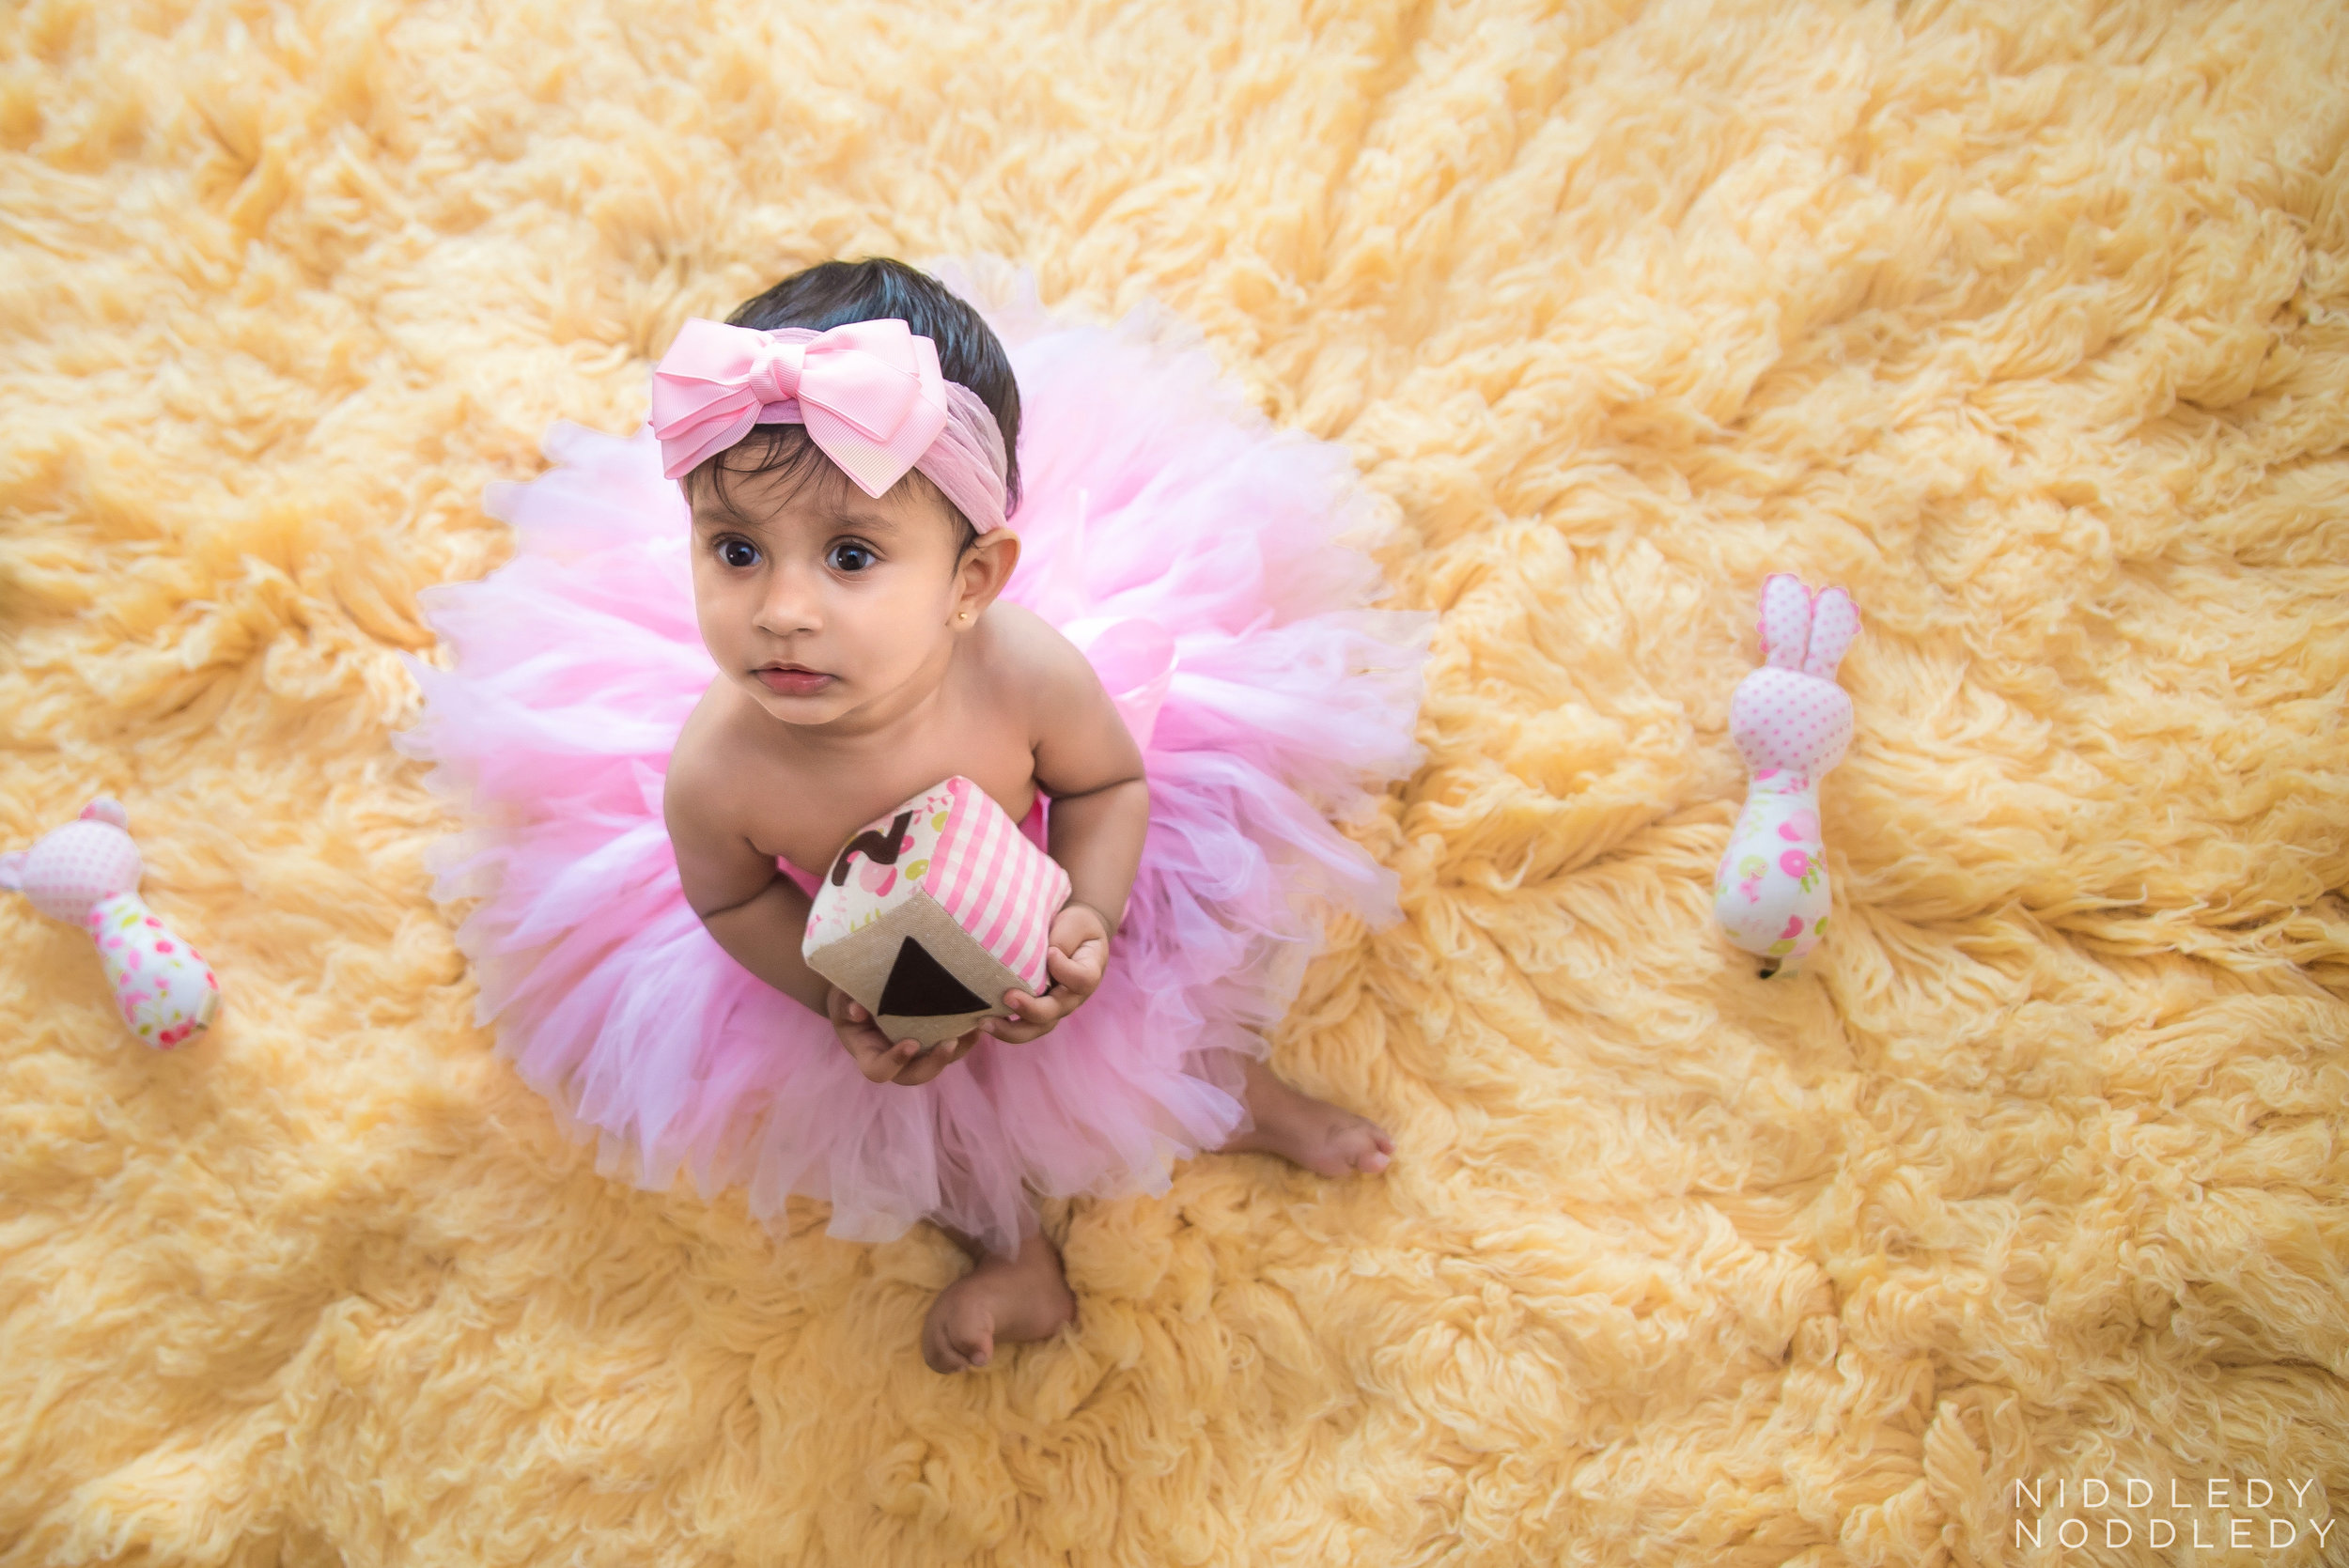 Anaisha Baby Photoshoot ❤ NiddledyNoddledy.com ~ Bumps to Babies Photography, Kolkata - 130.jpg